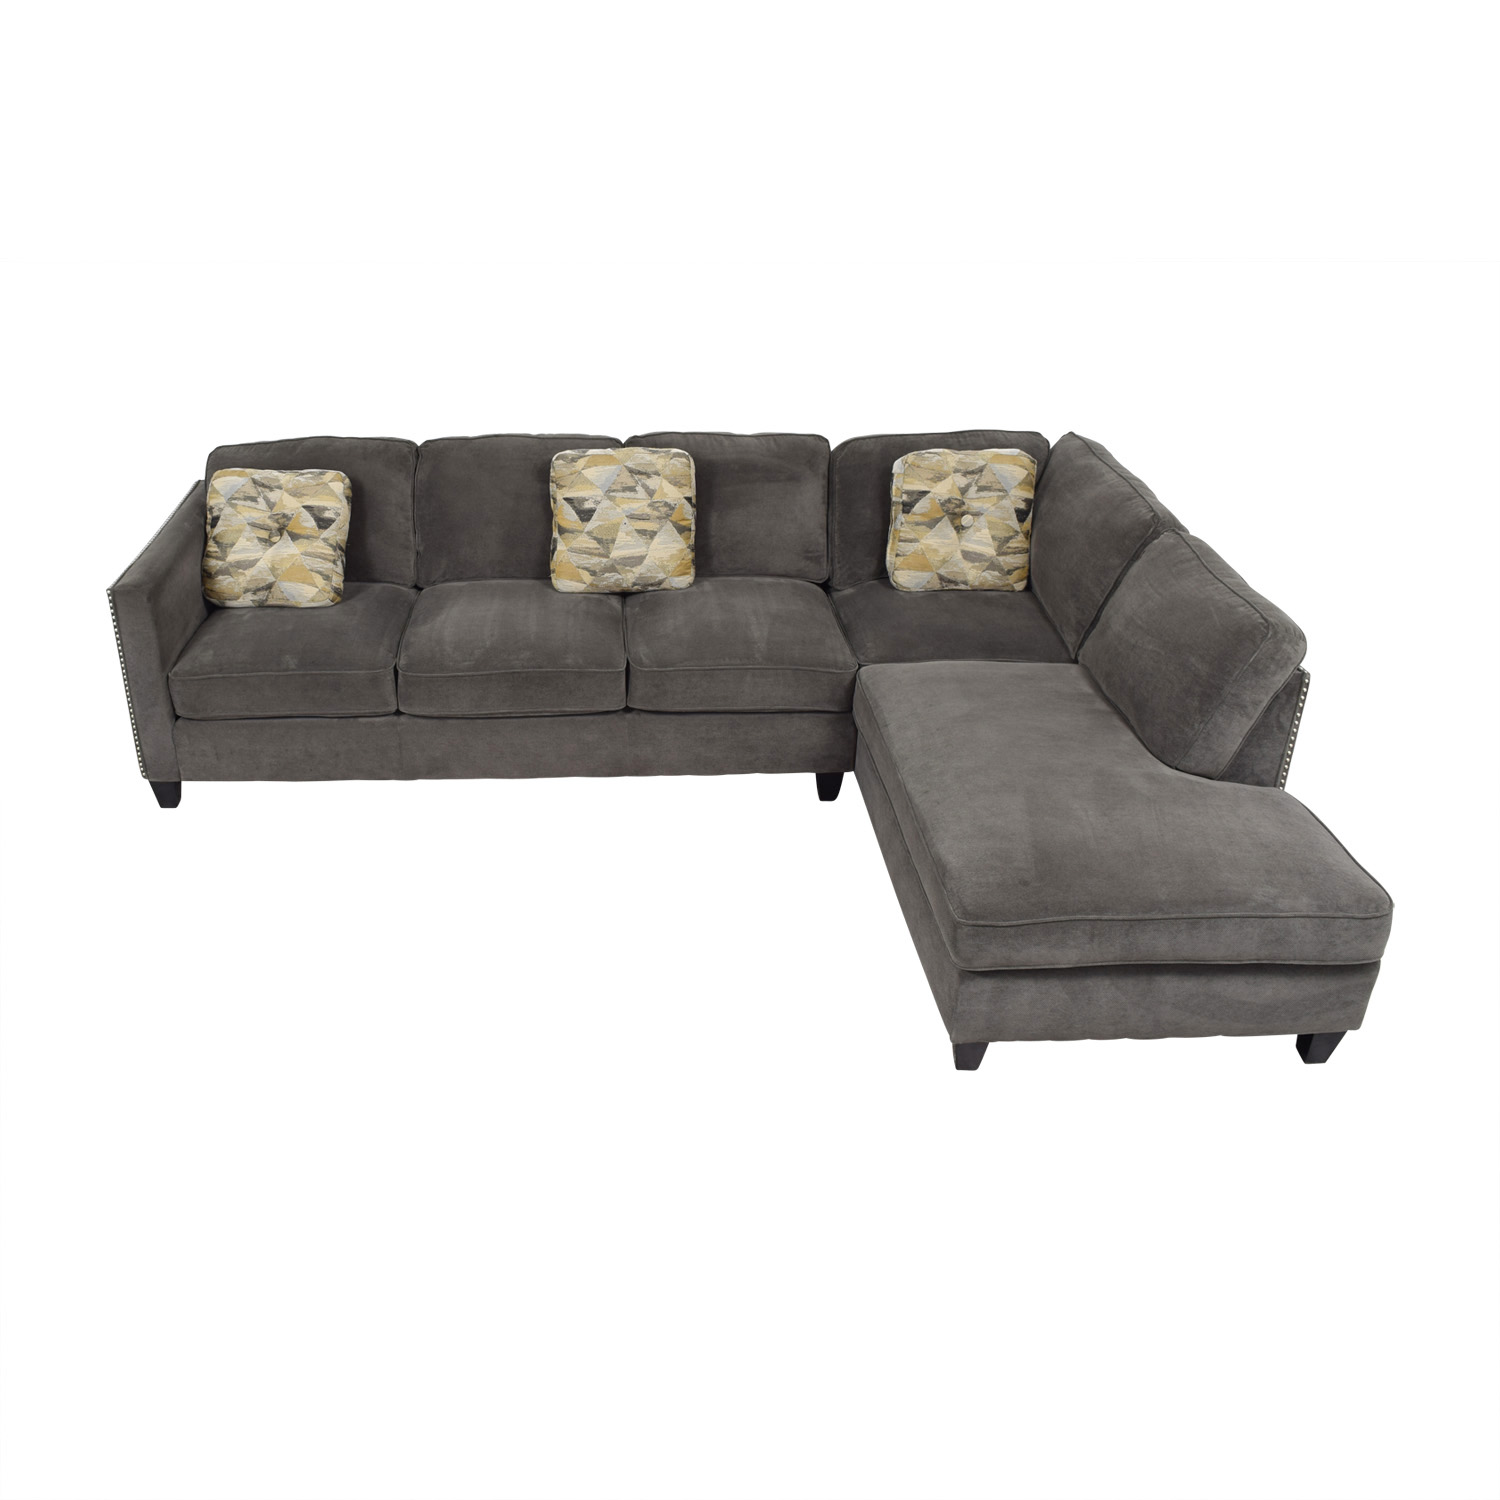 Brayden Studio Baugh Grey Chaise Sectional Brayden Studio